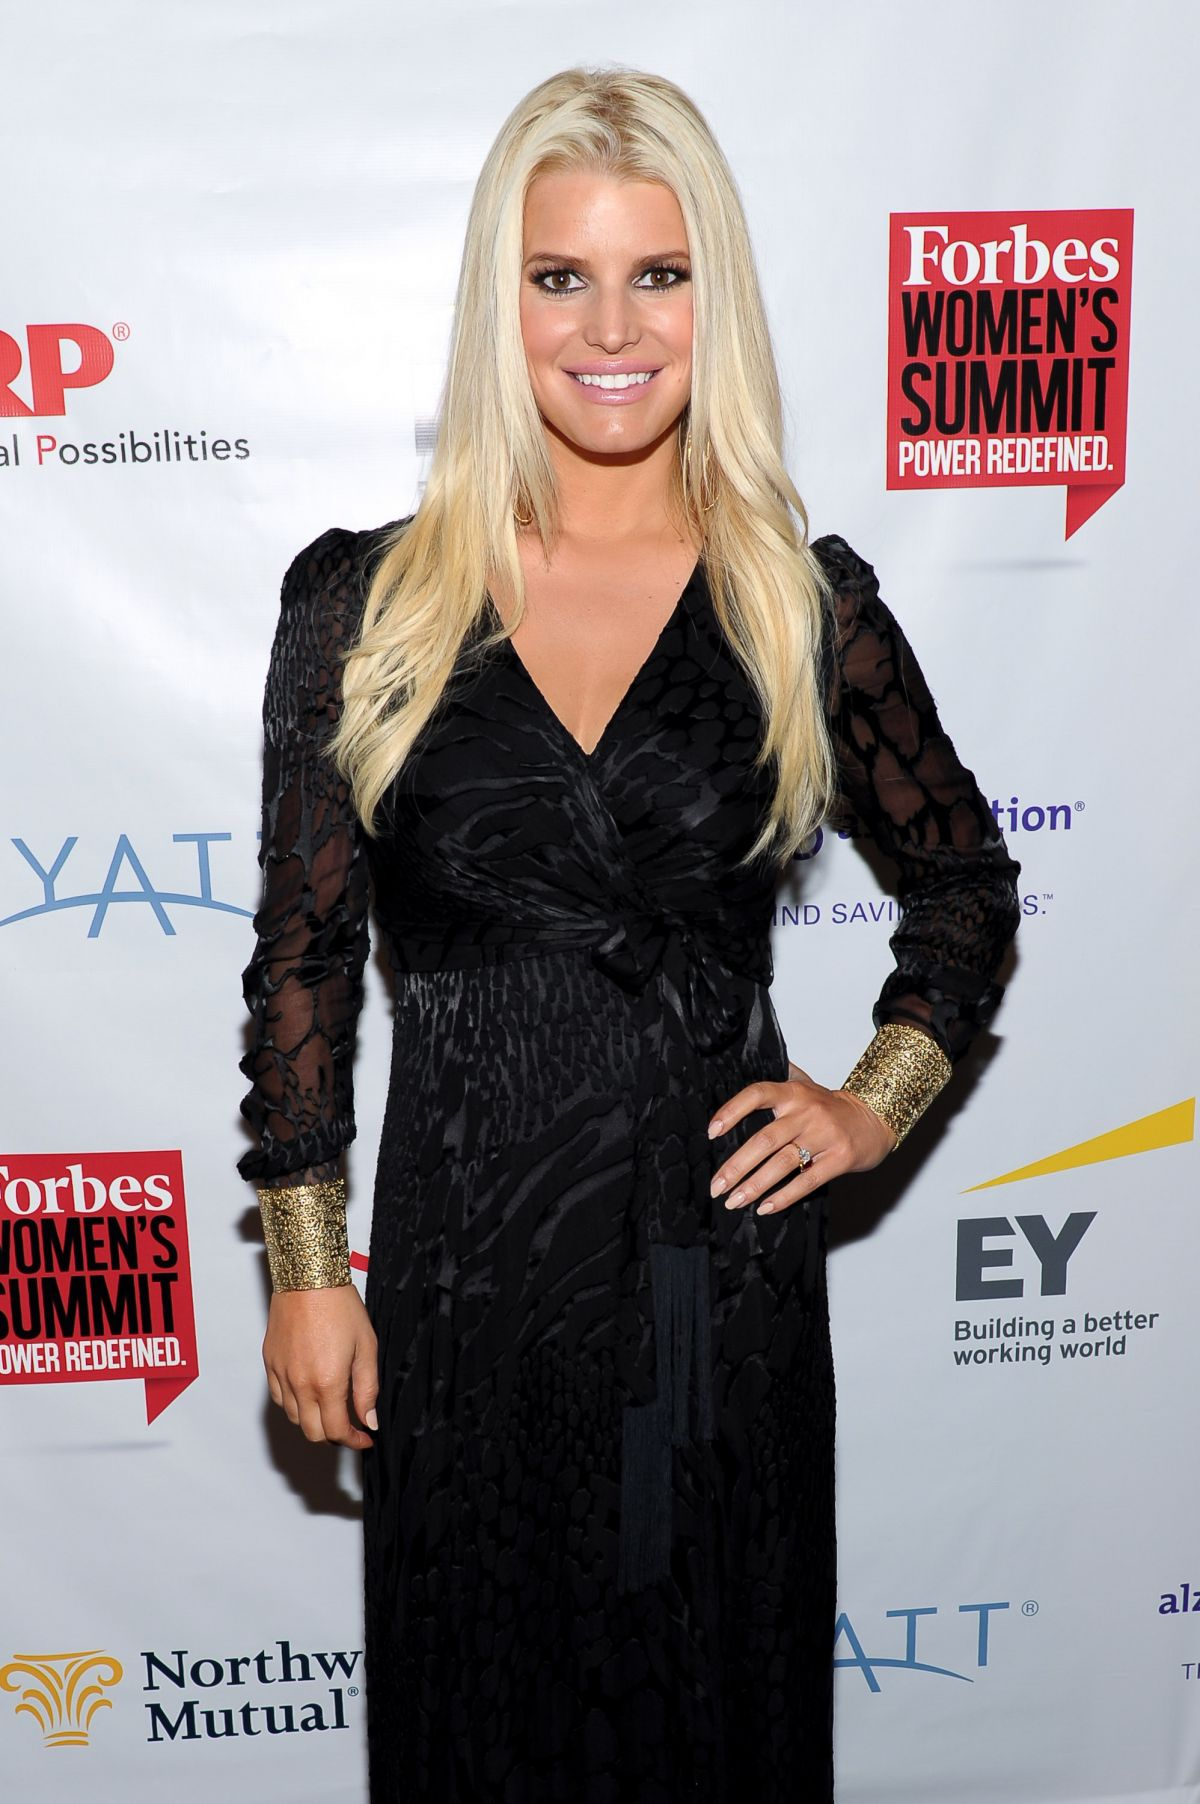 jessica-simpson-at-forbes-women-s-summit-in-new-york_1